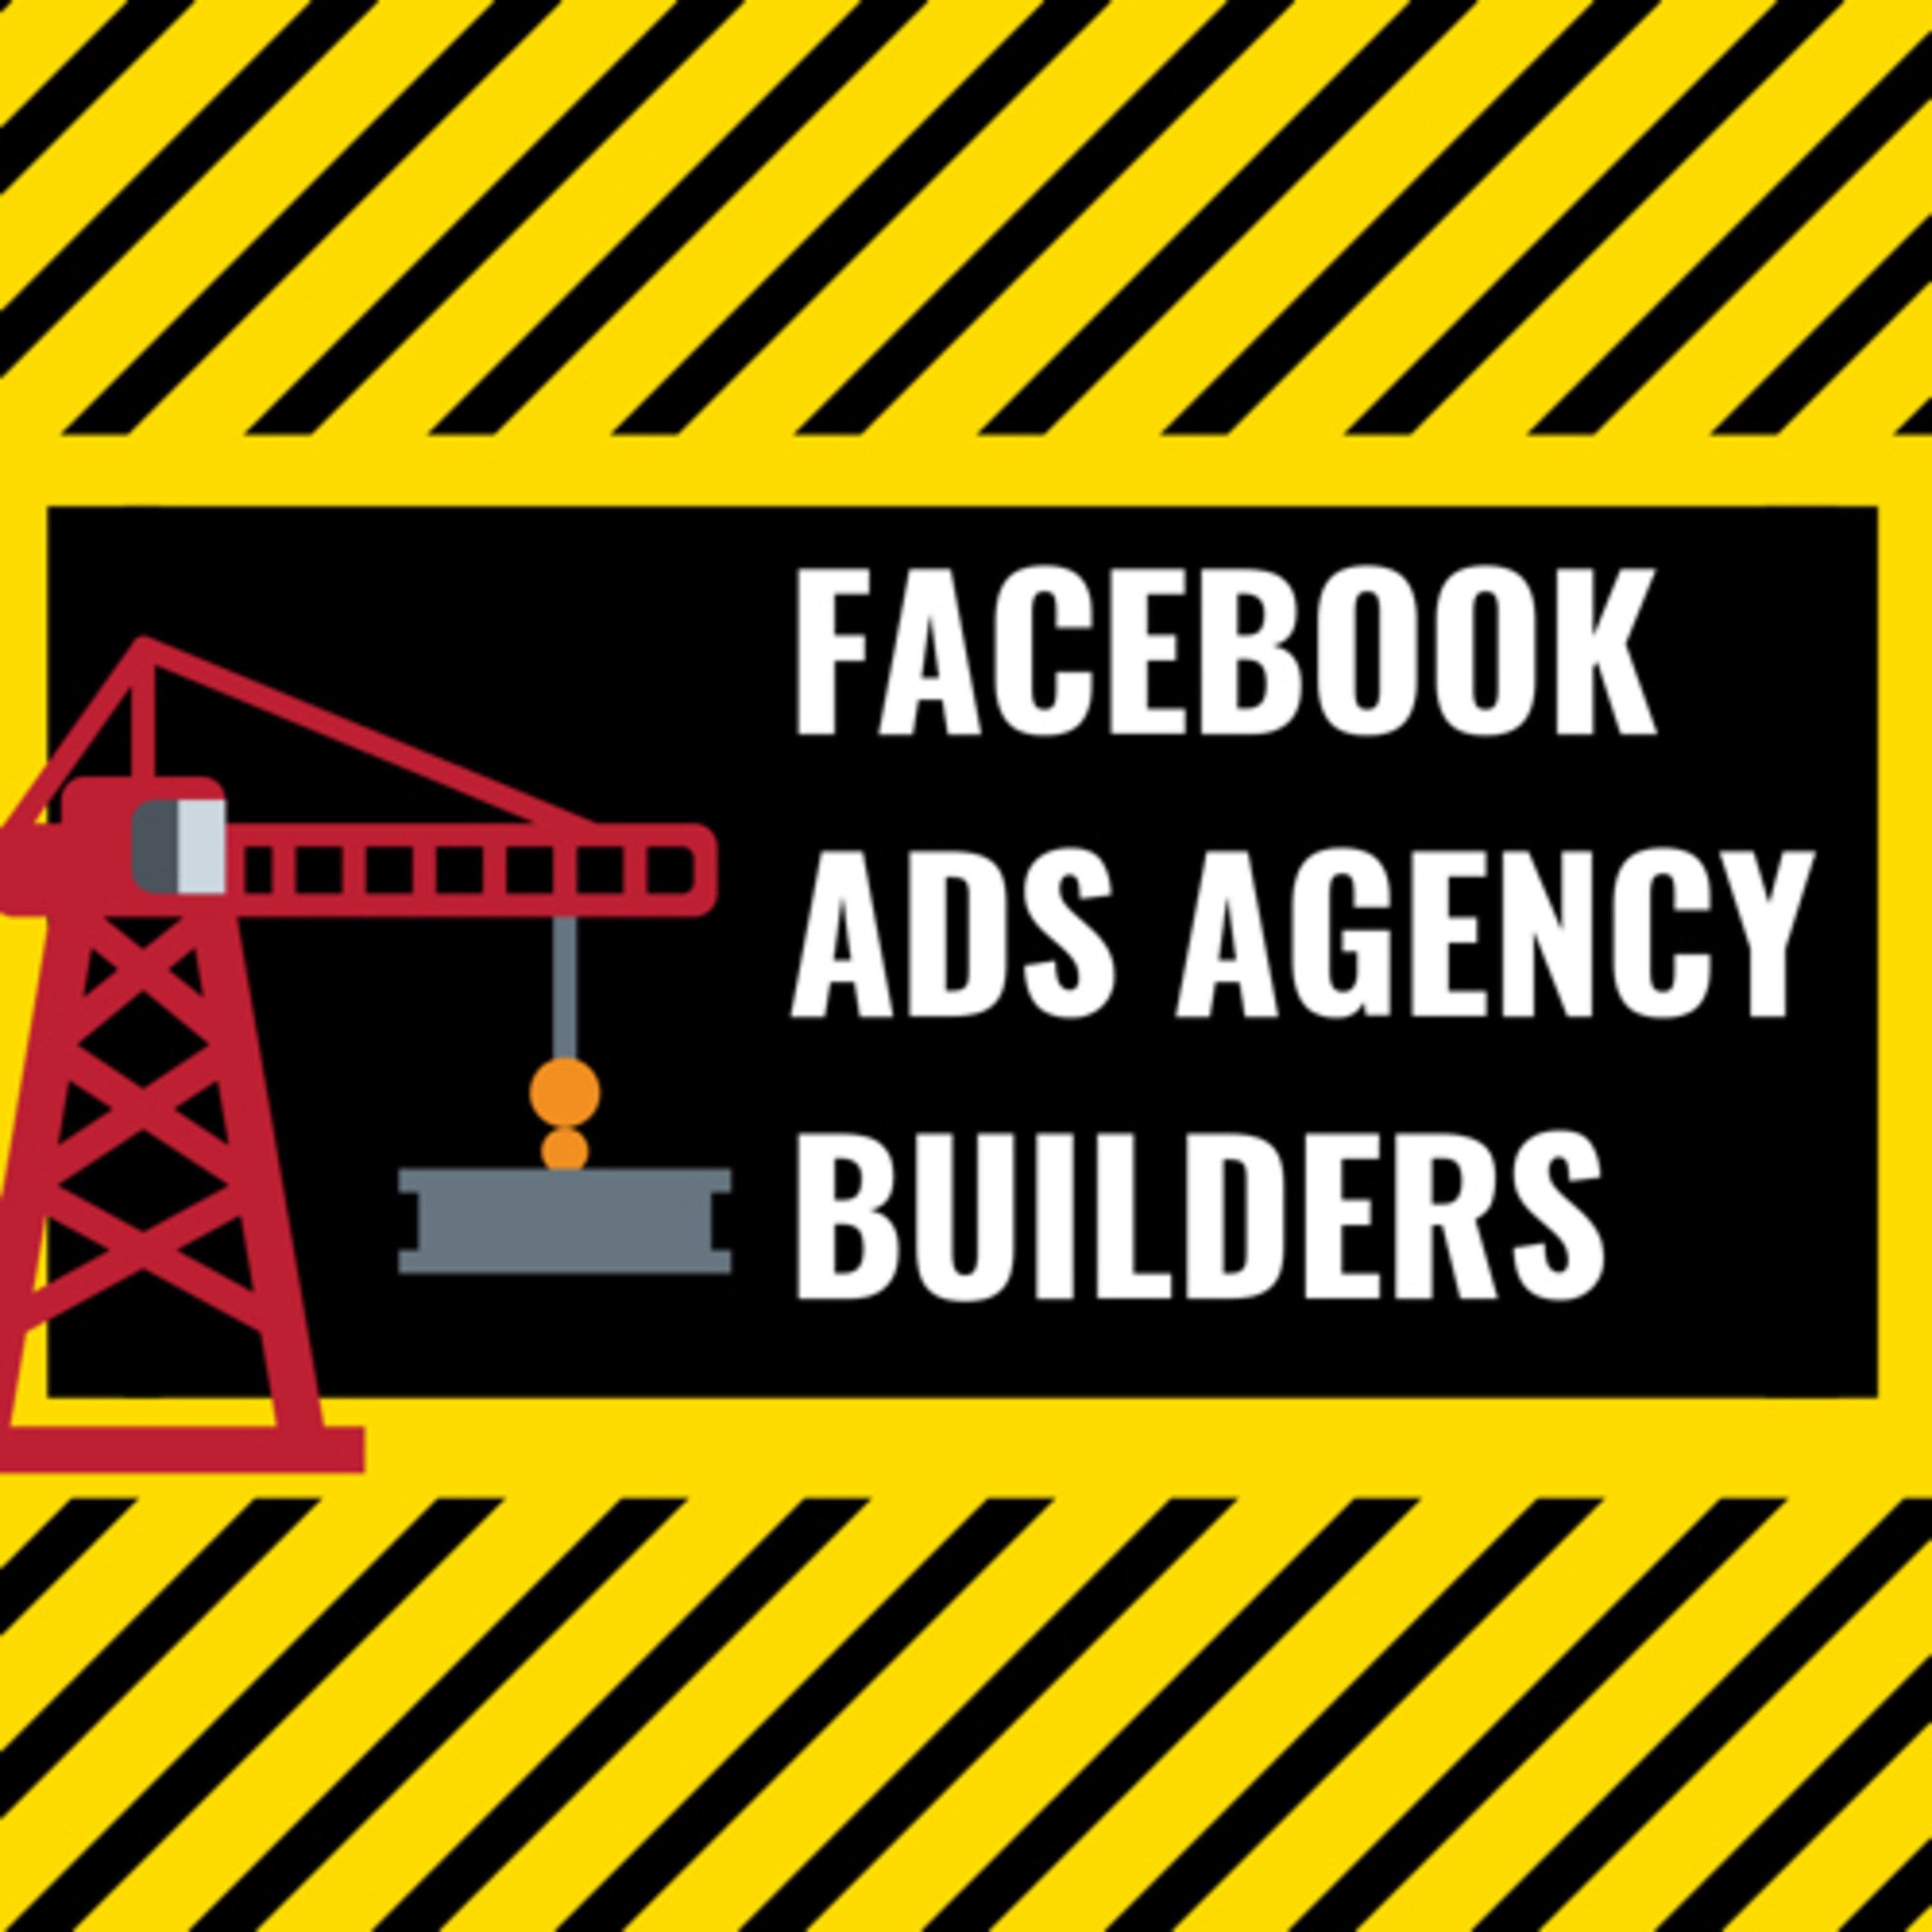 Facebook Ads Agency Builders | Listen Free on Castbox